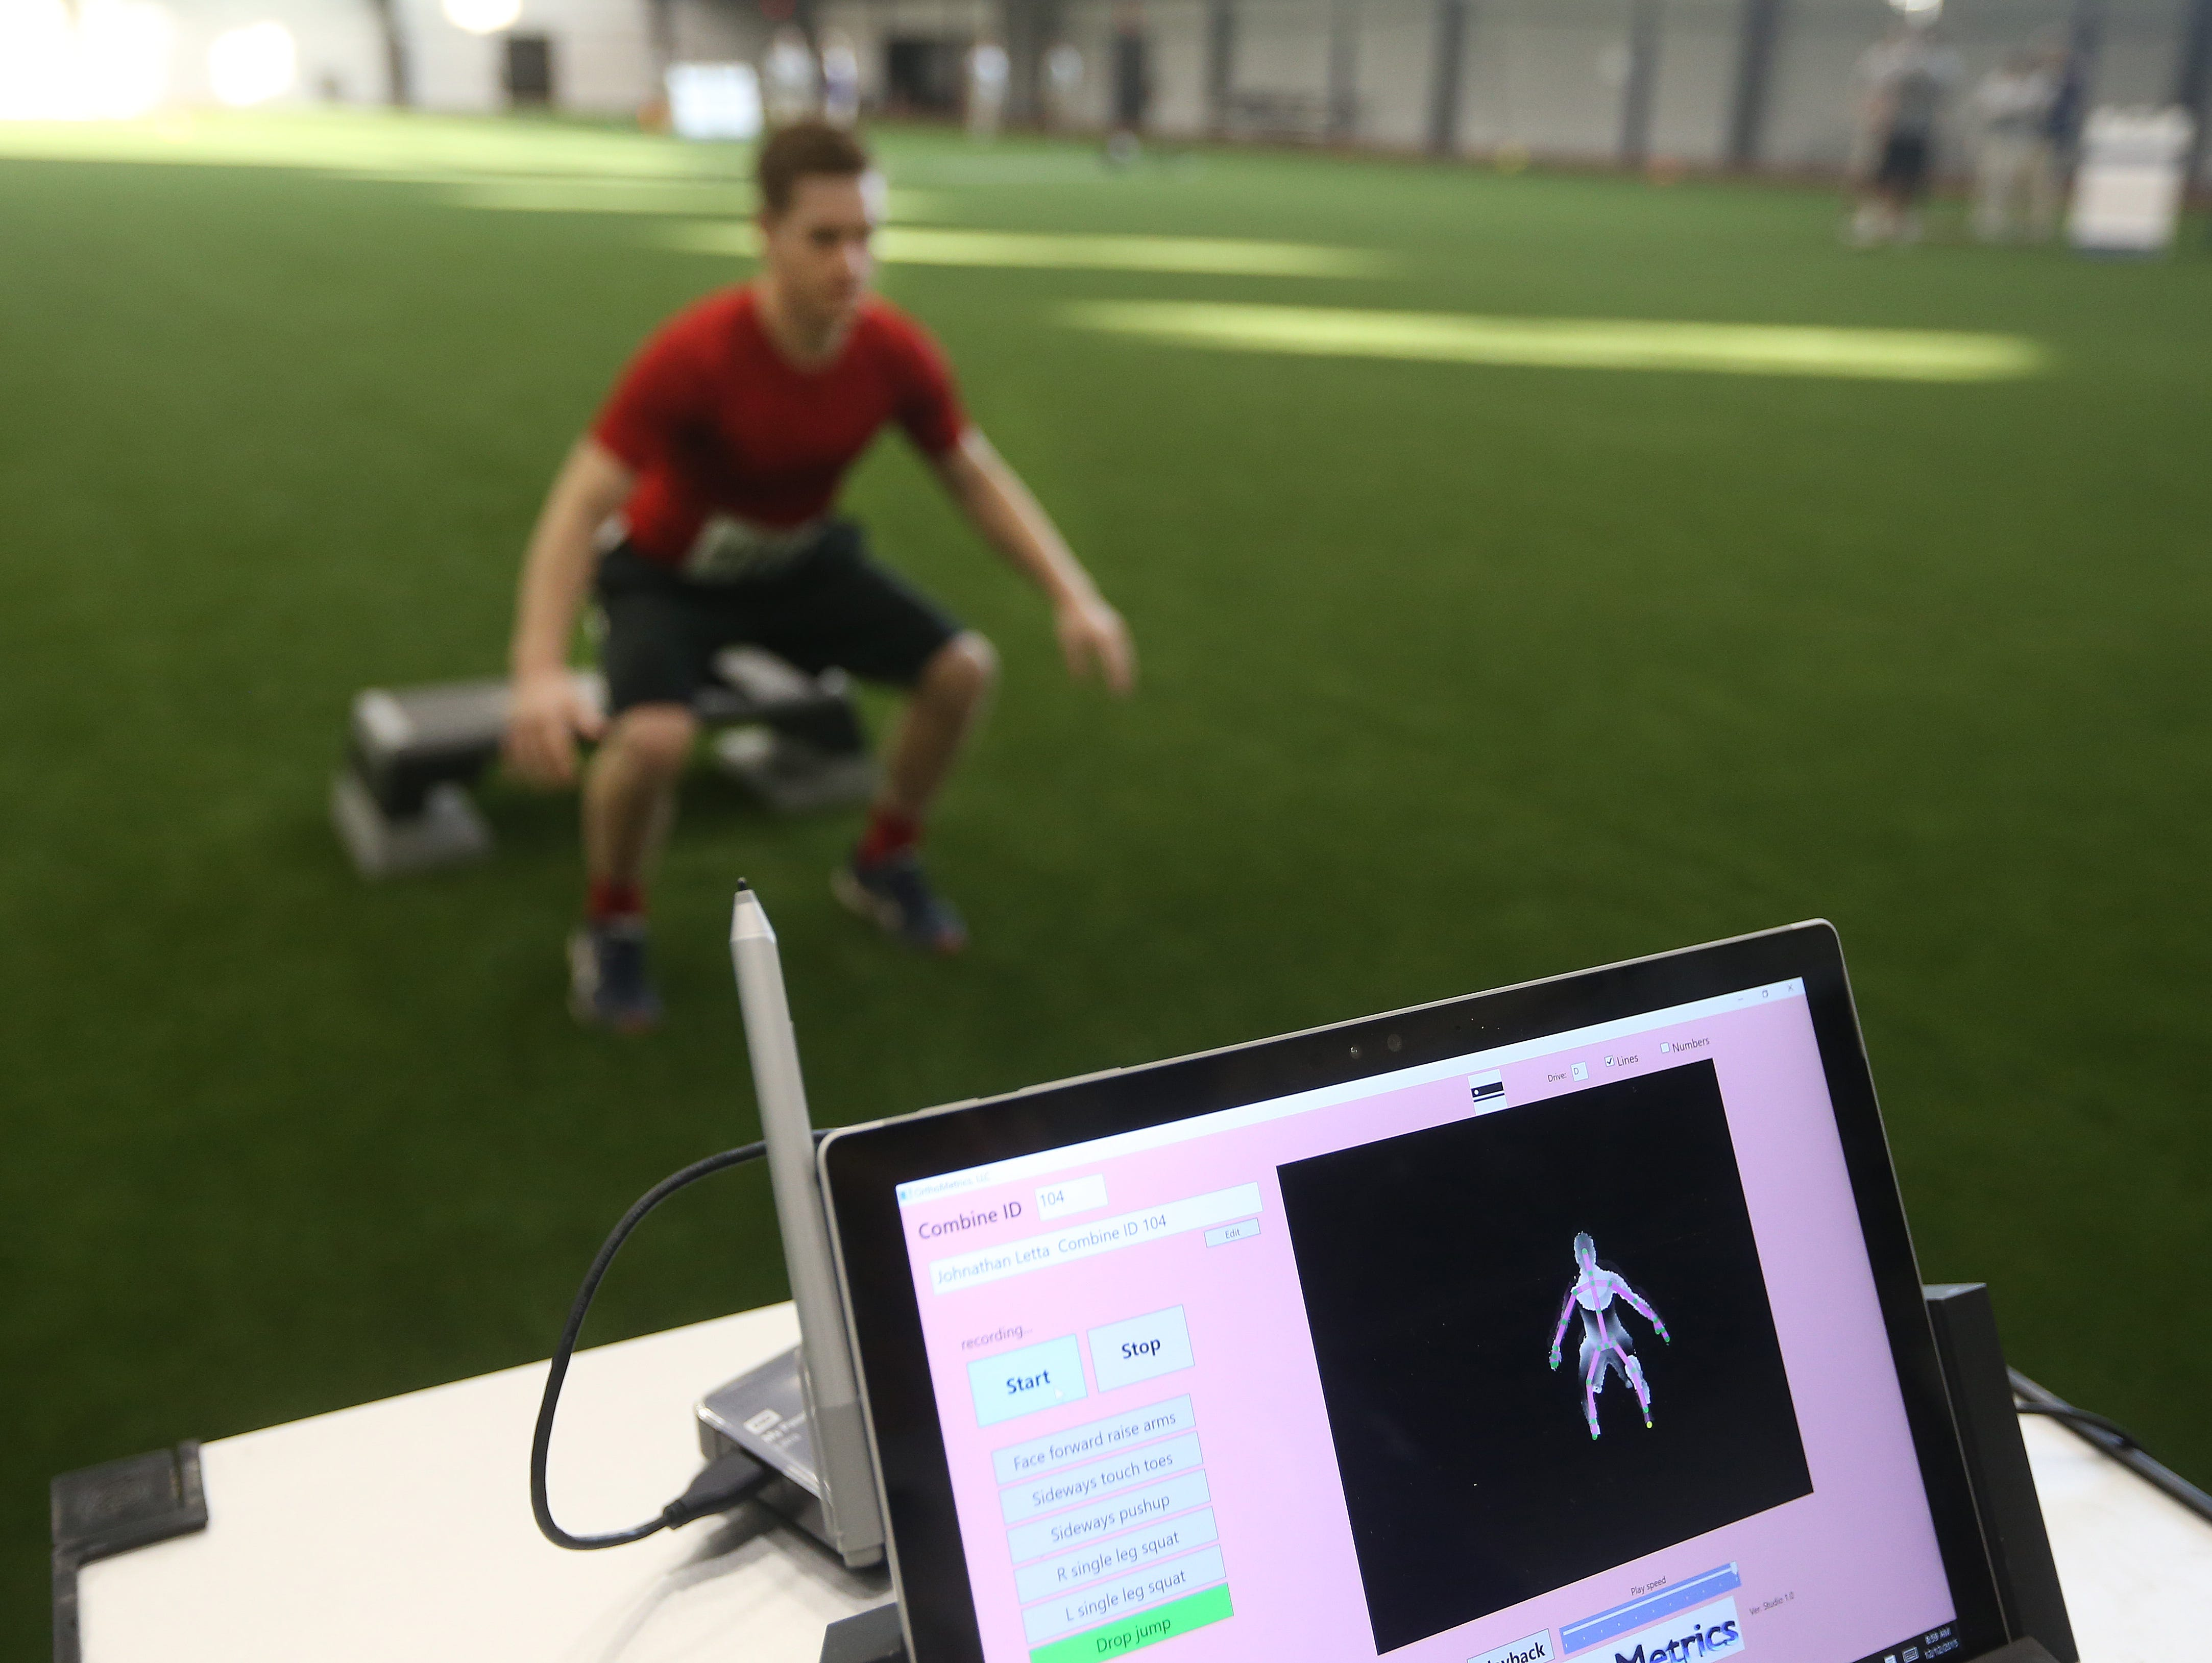 UR Medical staff uses computers to scan athletes during the AGR Sports Combine.